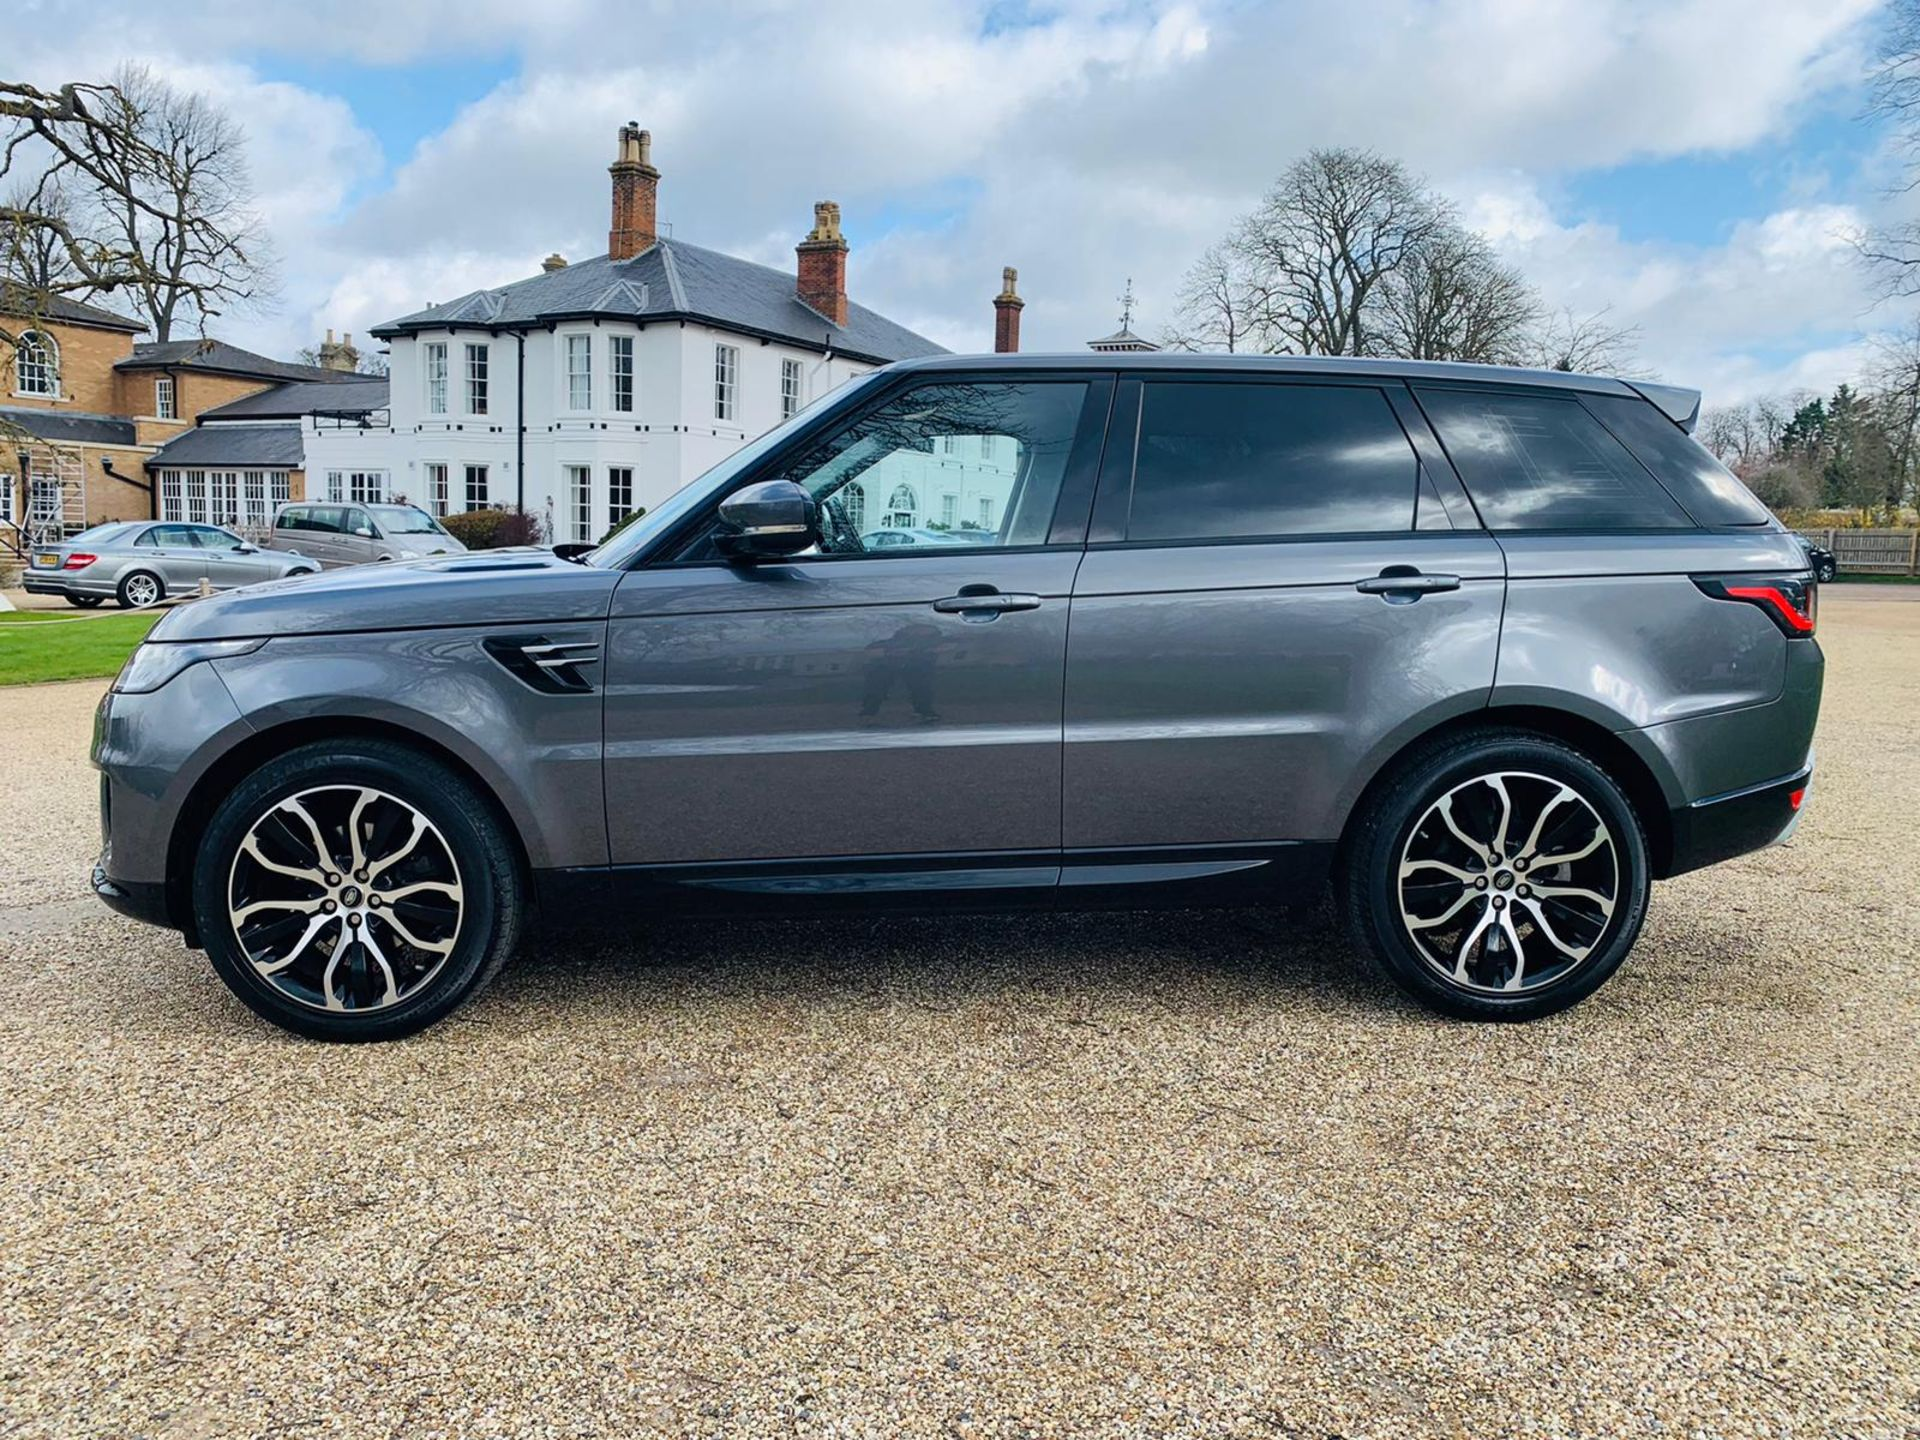 (RESERVE MET) Range Rover Sport 3.0 SDV6 HSE Auto - 2019 - 1 Keeper From New - Virtual Cockpit - - Image 2 of 42